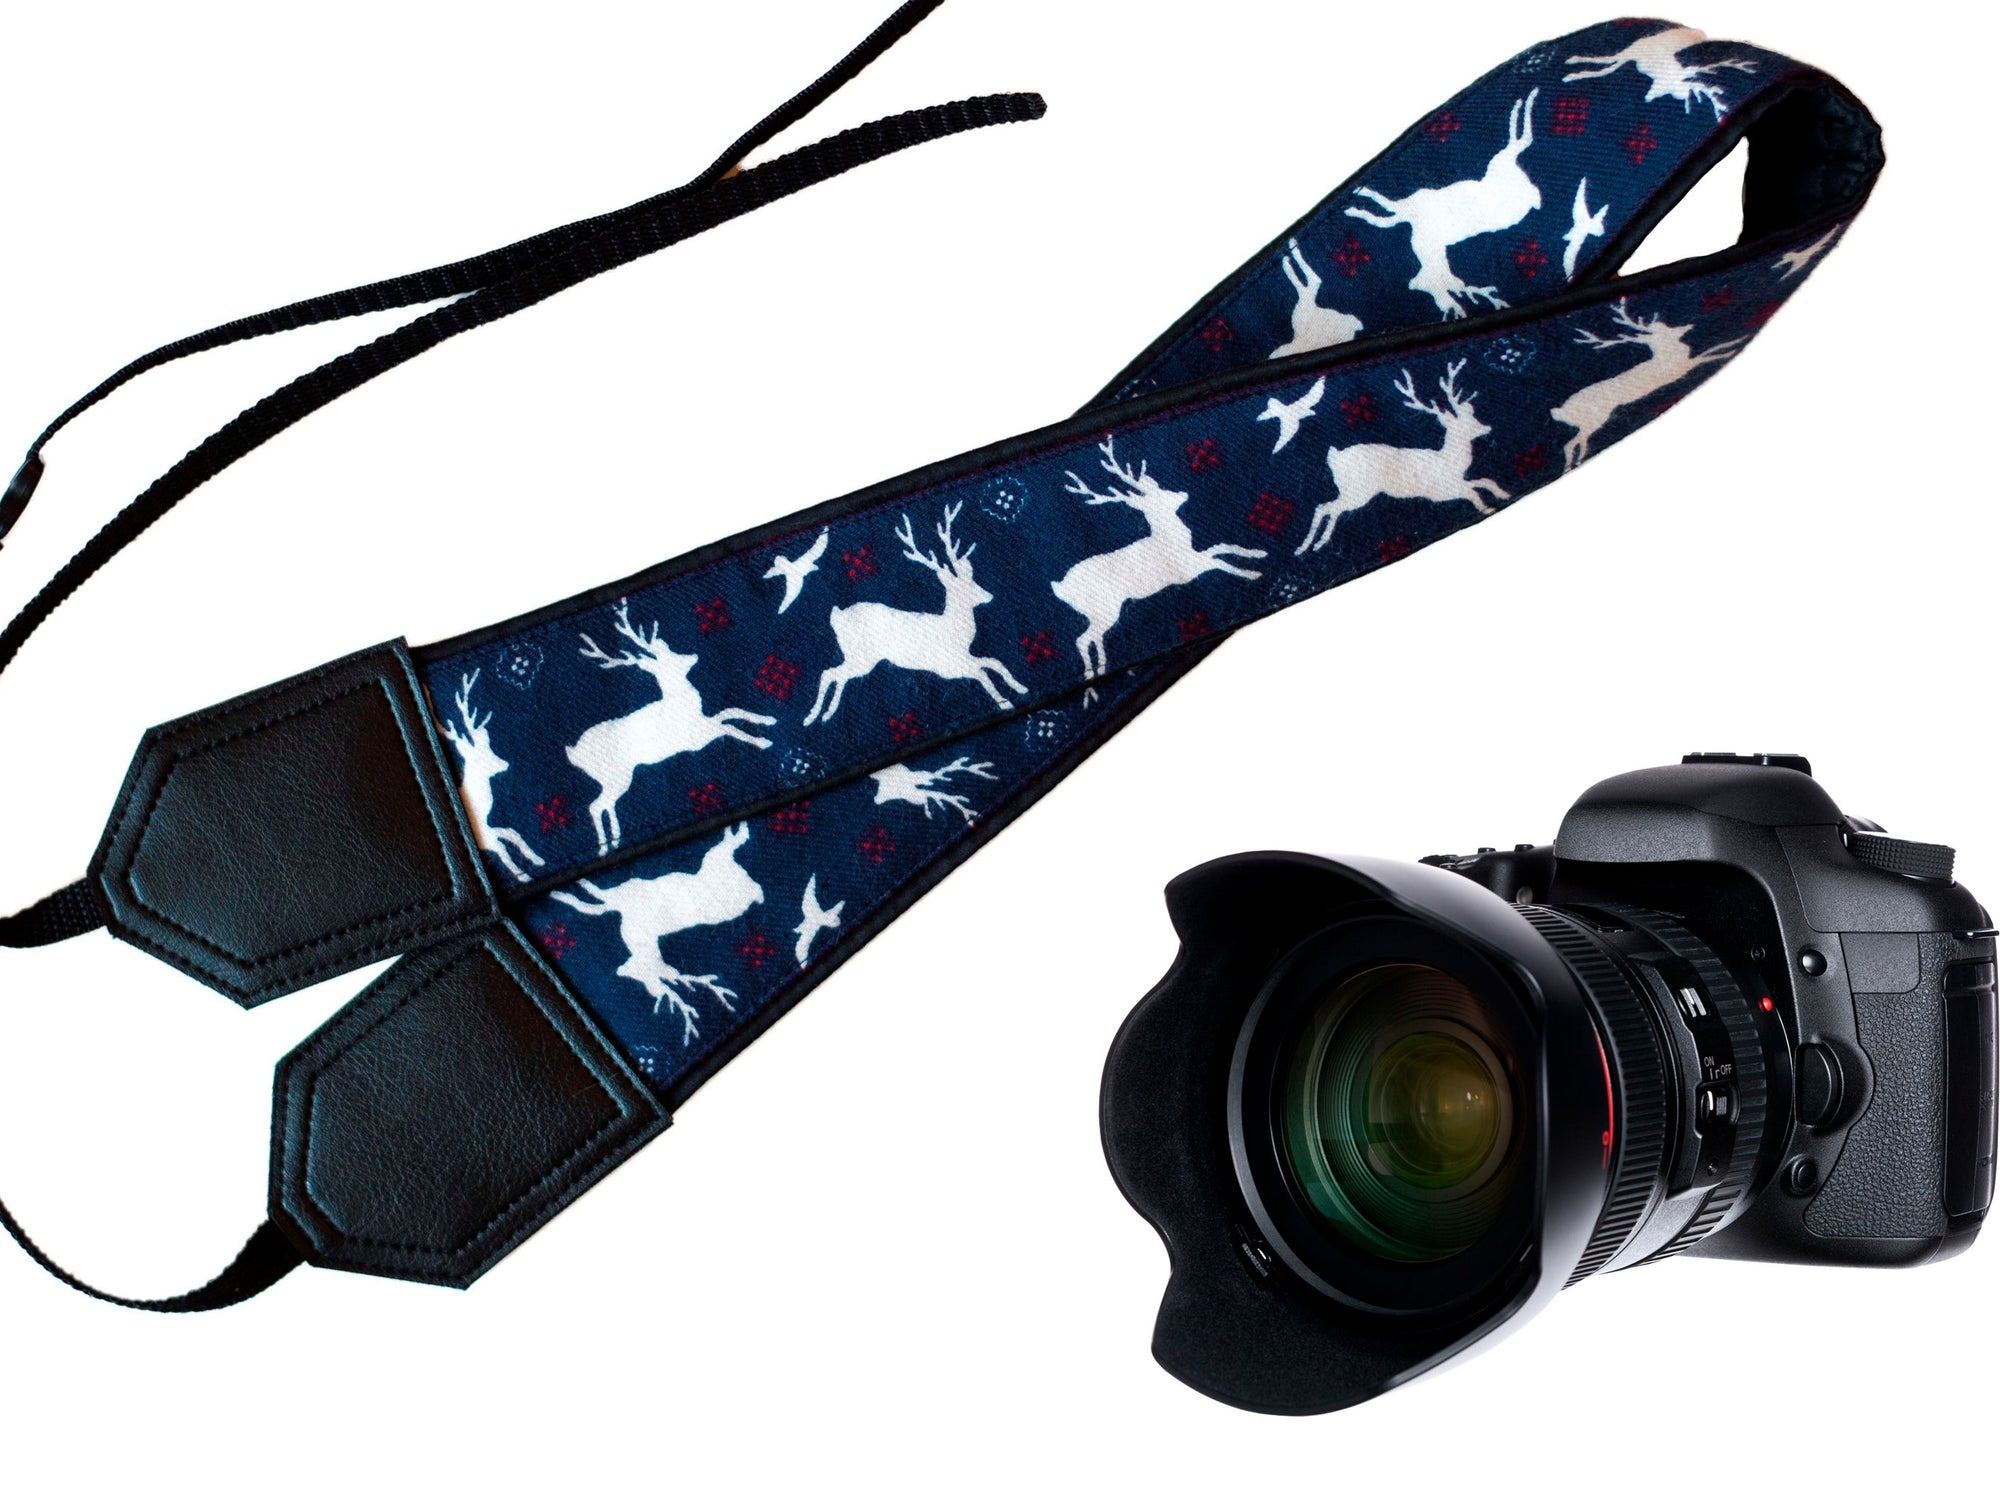 Deer Camera Strap. DSLR / SLR Camera Strap. Camera accessories. Photographer gift. Christmas gifts by InTePro